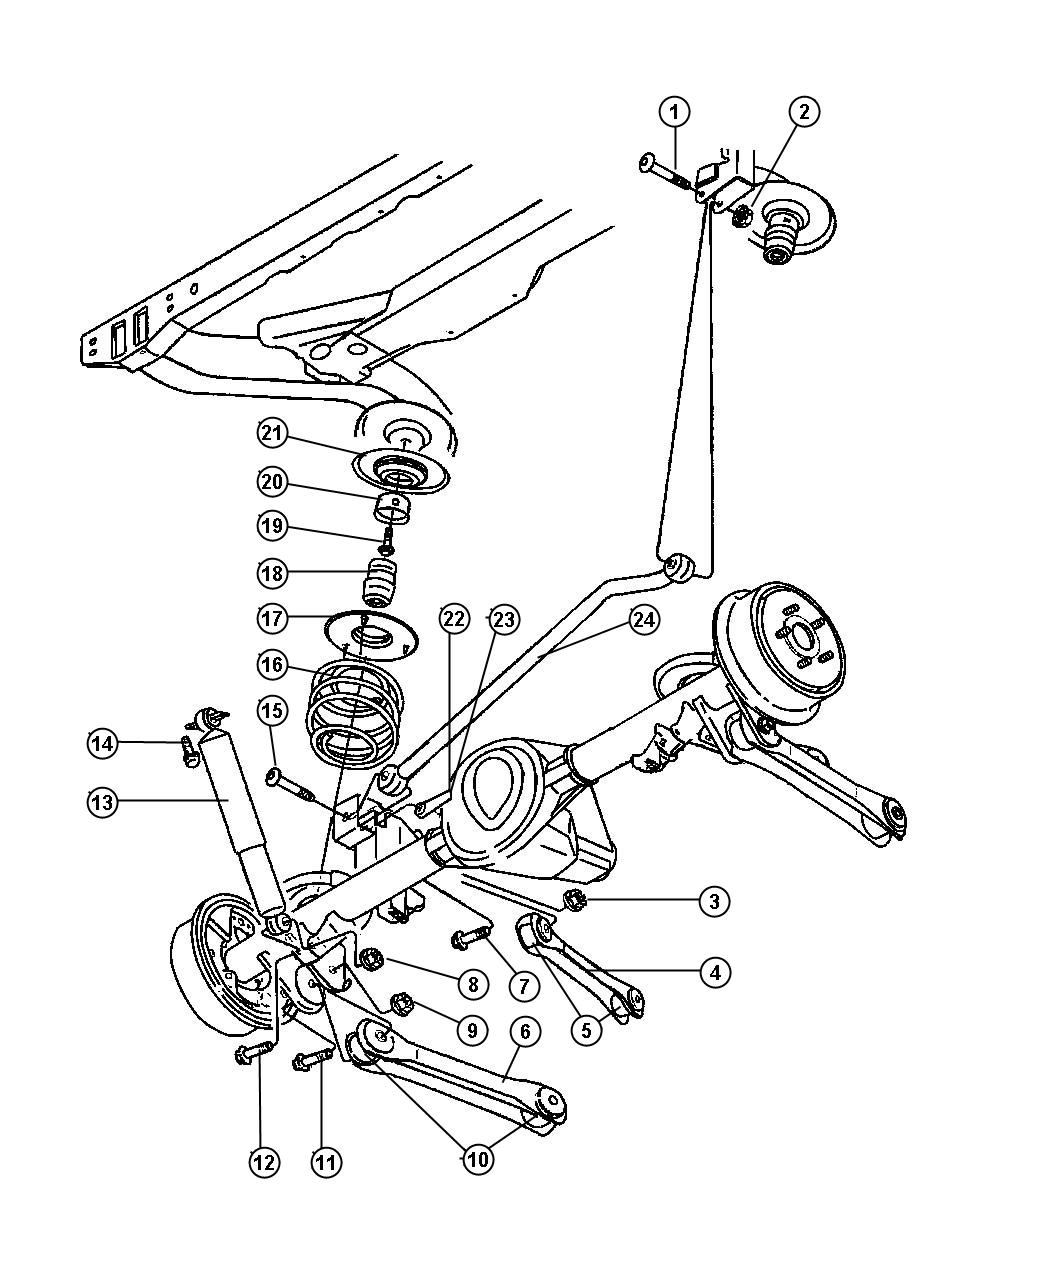 Where Can You Find An Exploded View Of The Front